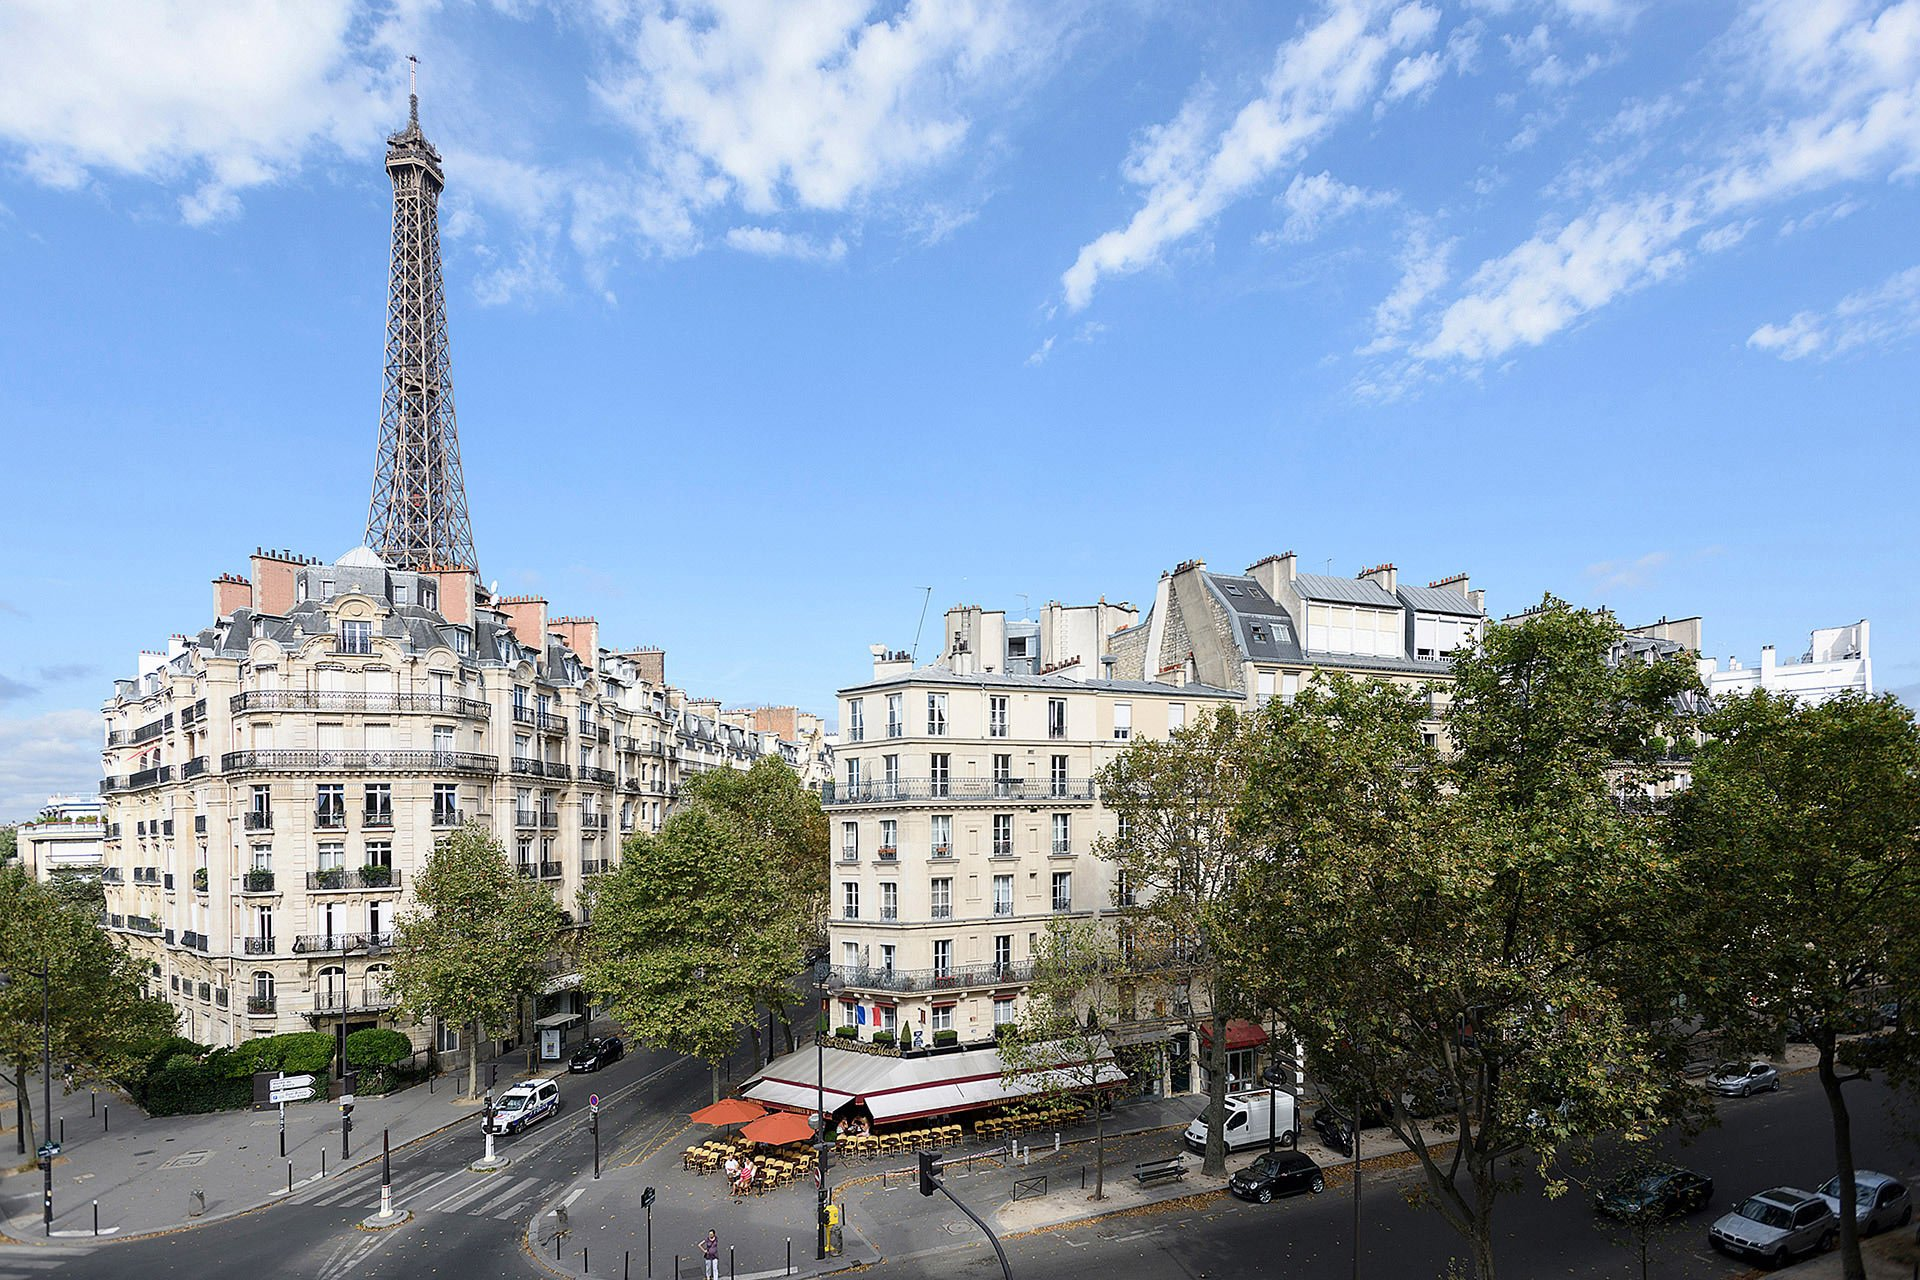 Stunning view of surrounding buildings and Eiffel Tower from the Clairette vacation rental